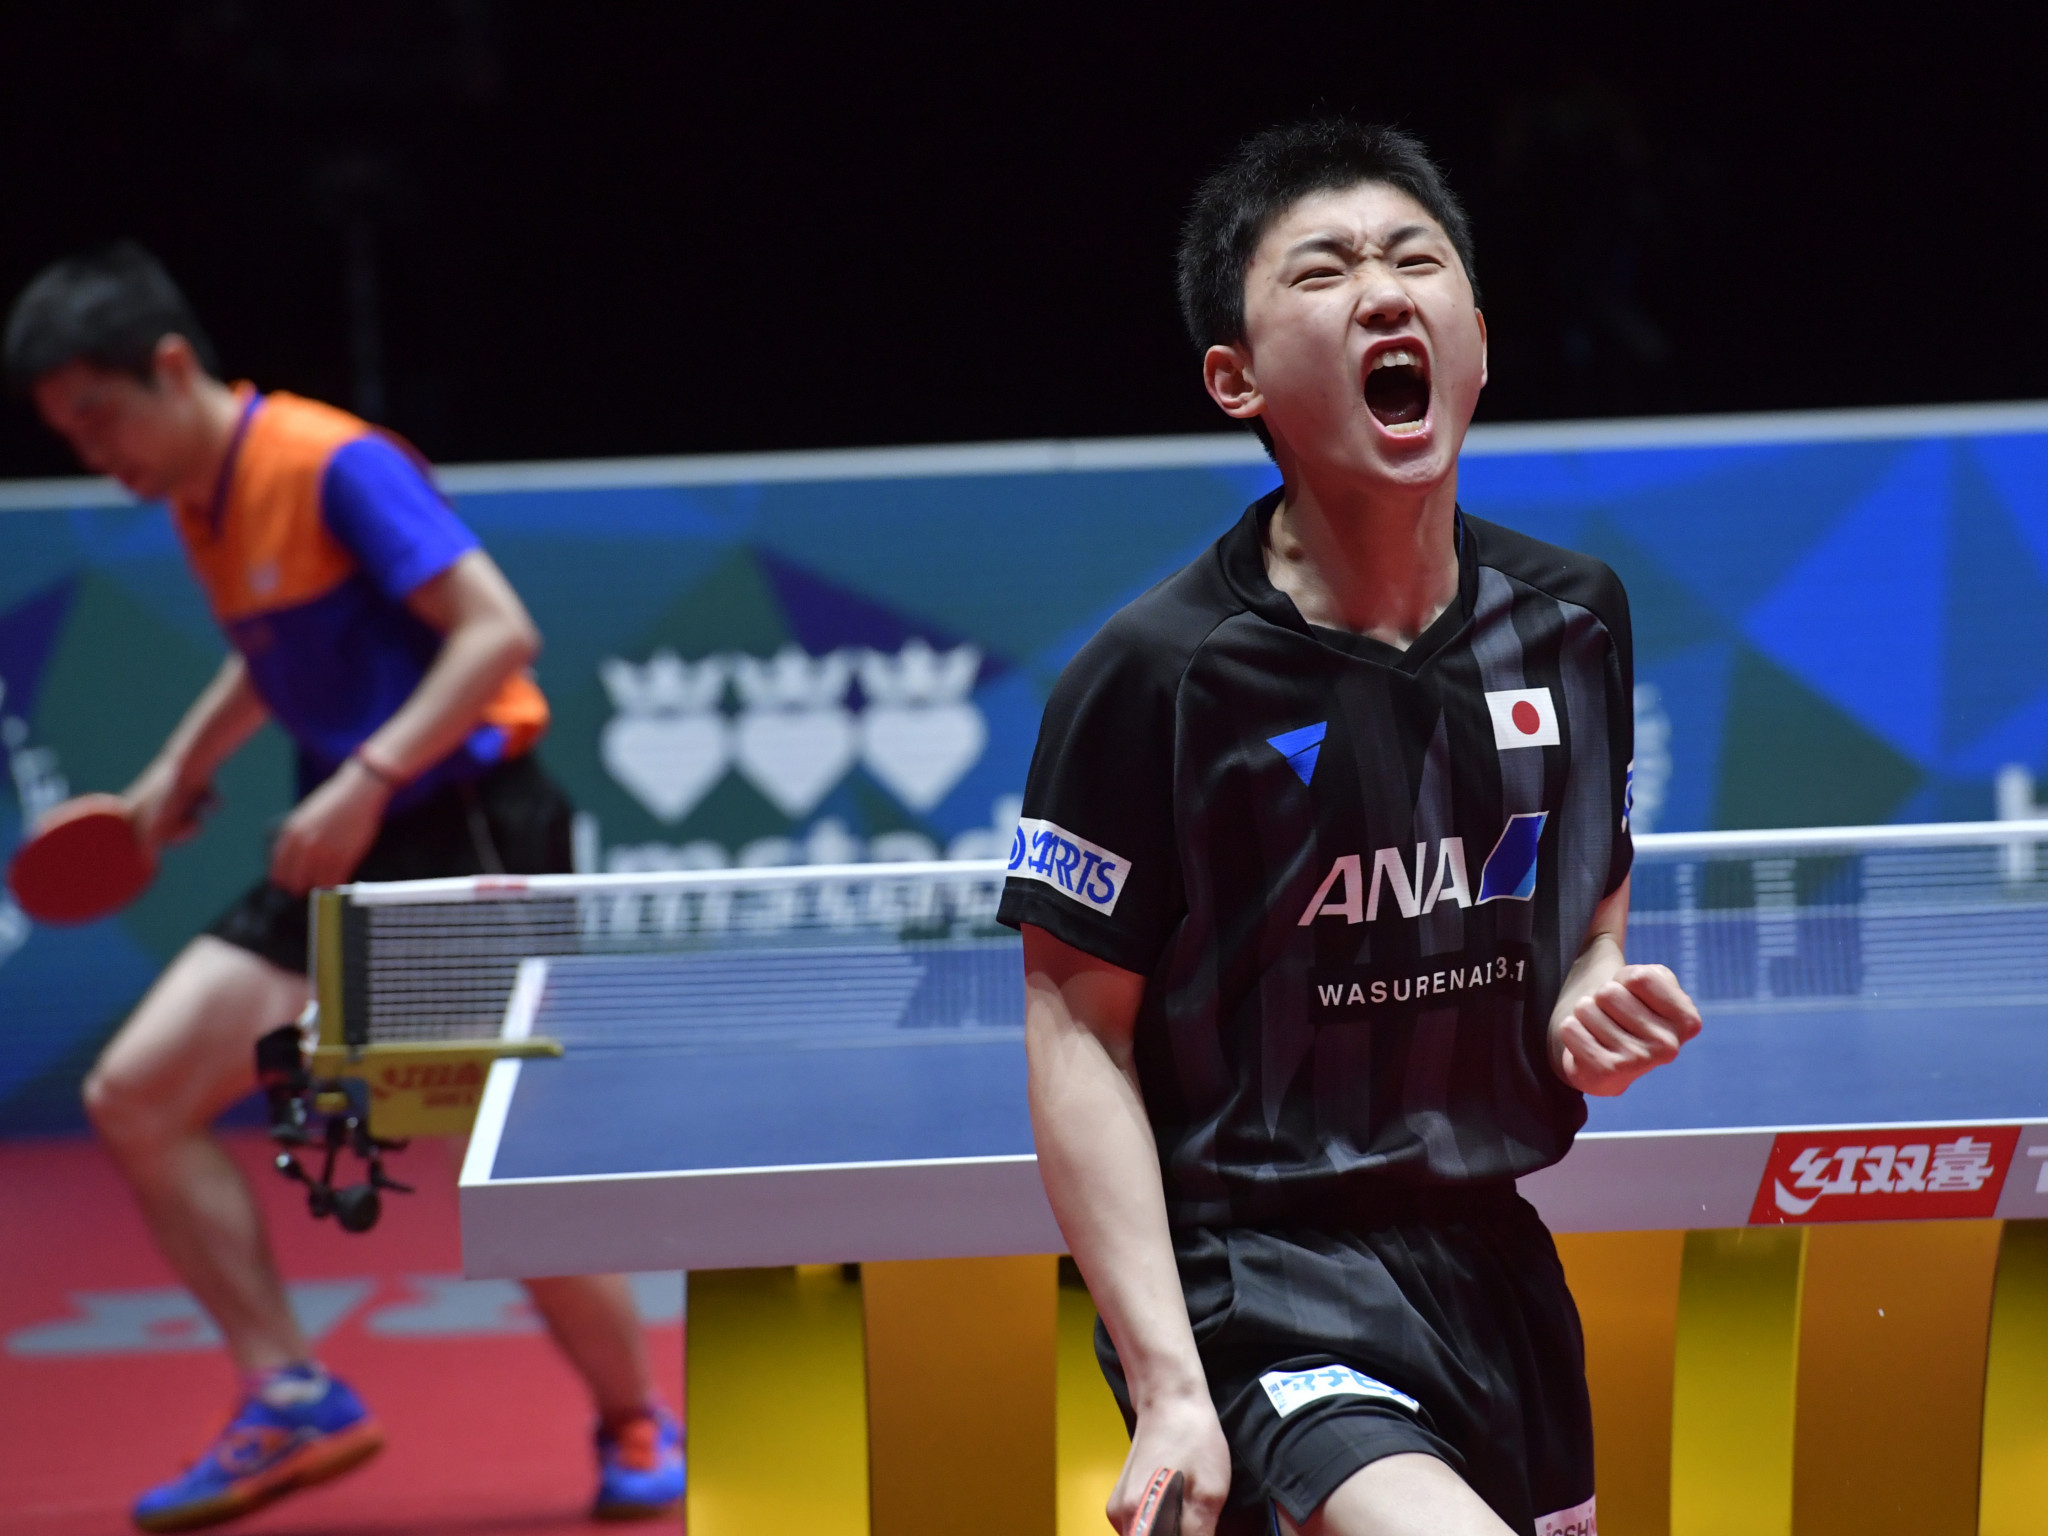 The ITTF announced new dates for the World Team Table Tennis Championships ©Getty Images